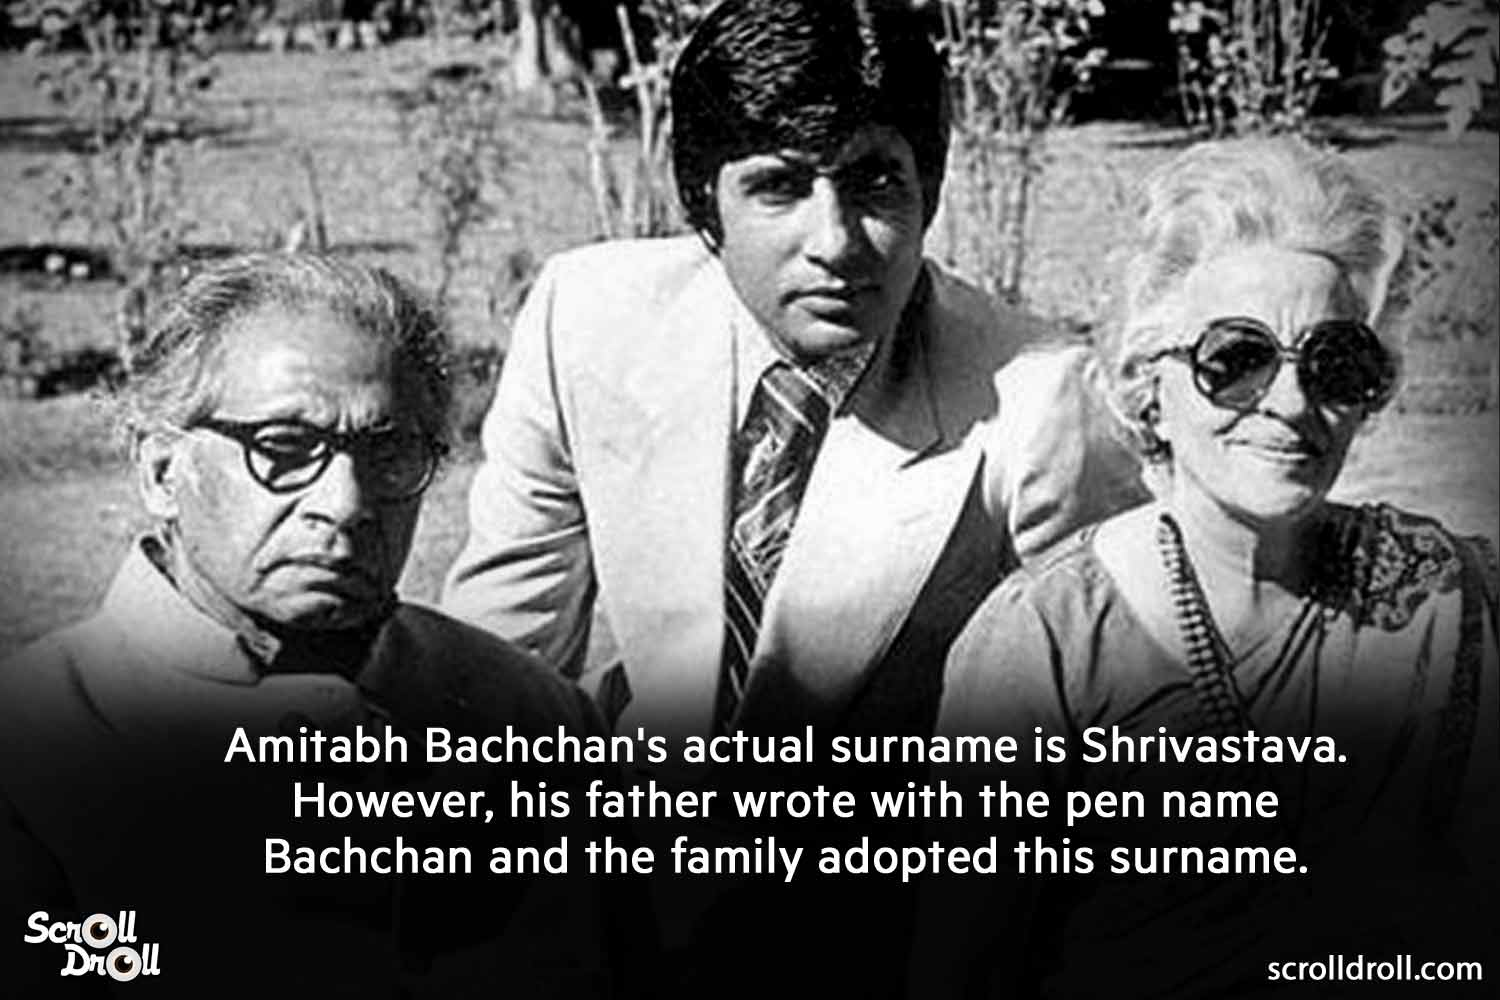 amitabh bachcha's actual surname is shrivastava. however his father wrote the pen name bachchan and the family adopted this surname-amitabh bachchan facts